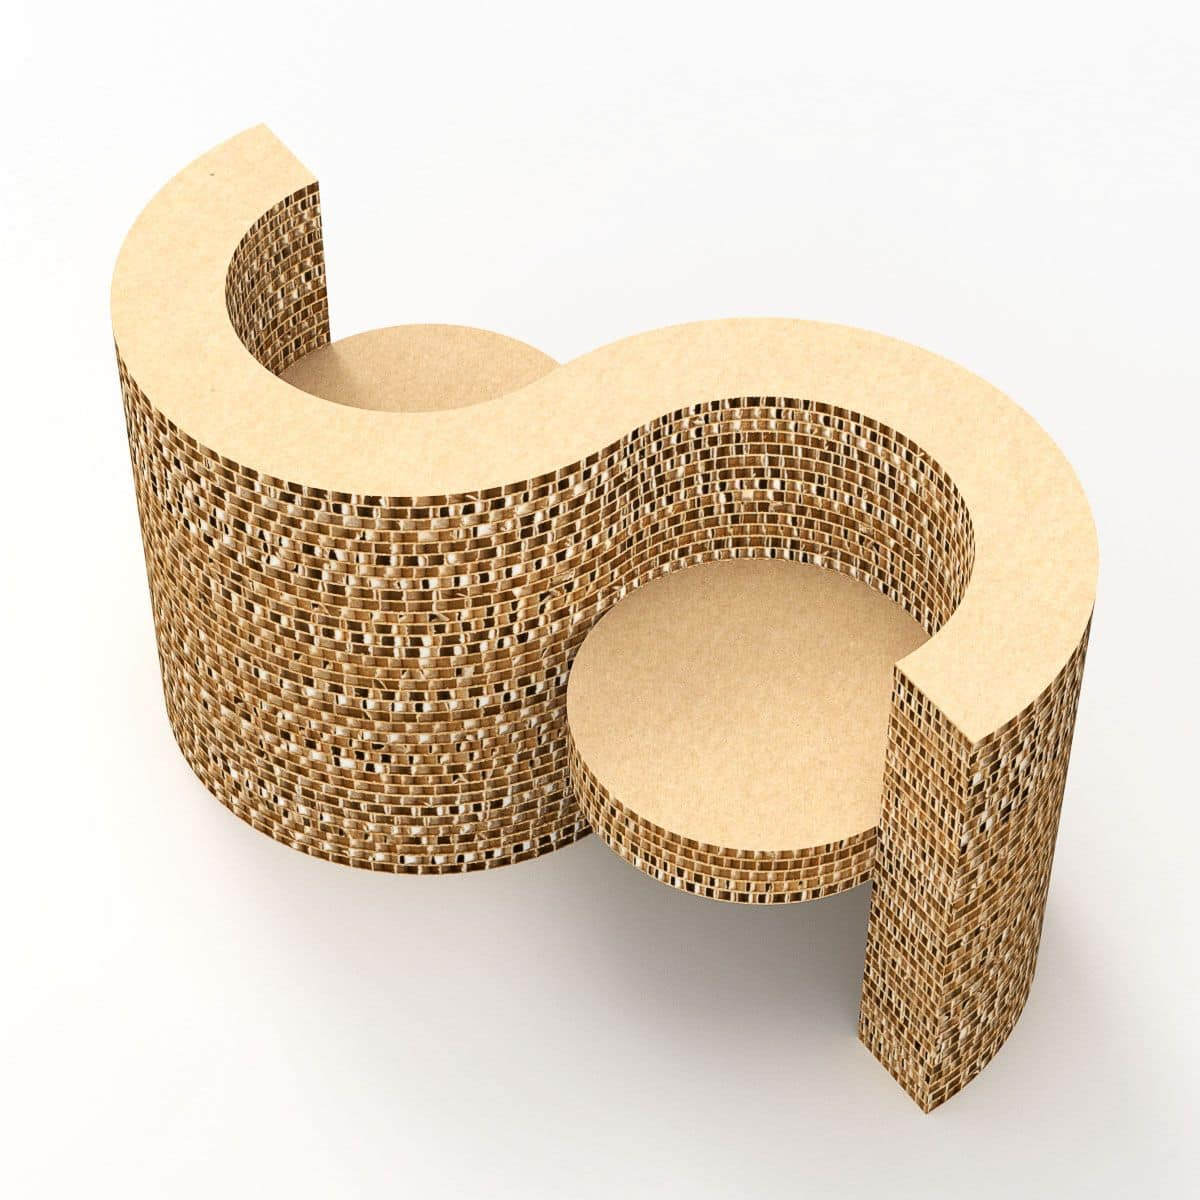 Element With Two Seats With Armrests Made Of Cardboard